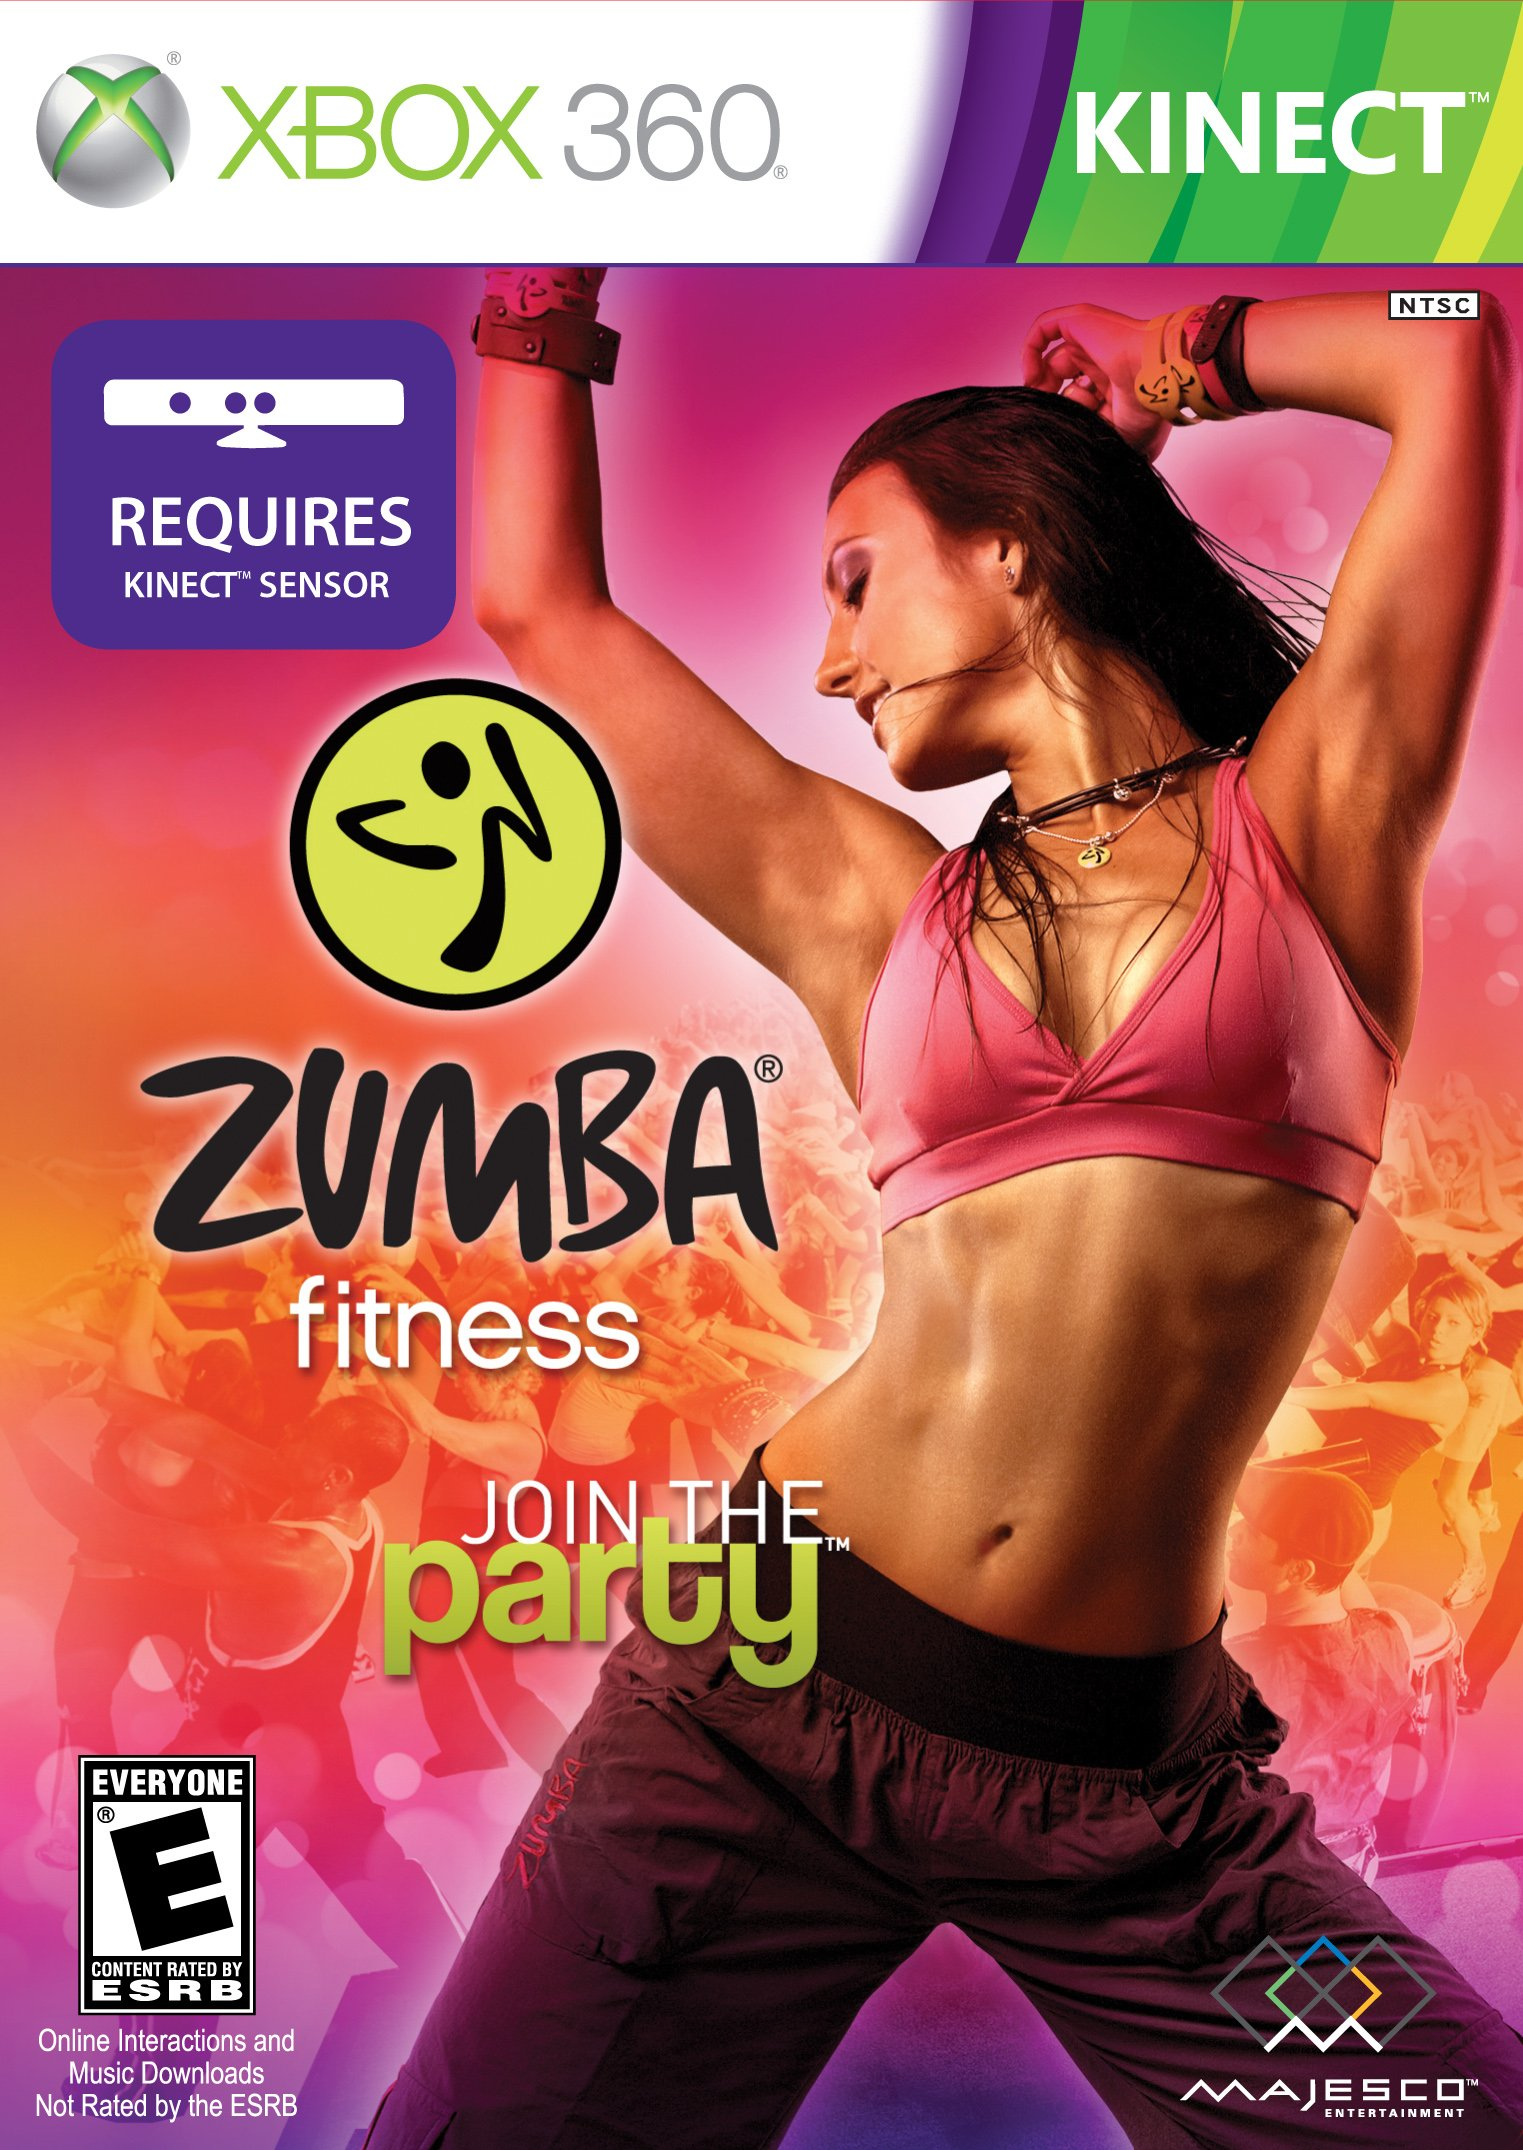 zumba dating site